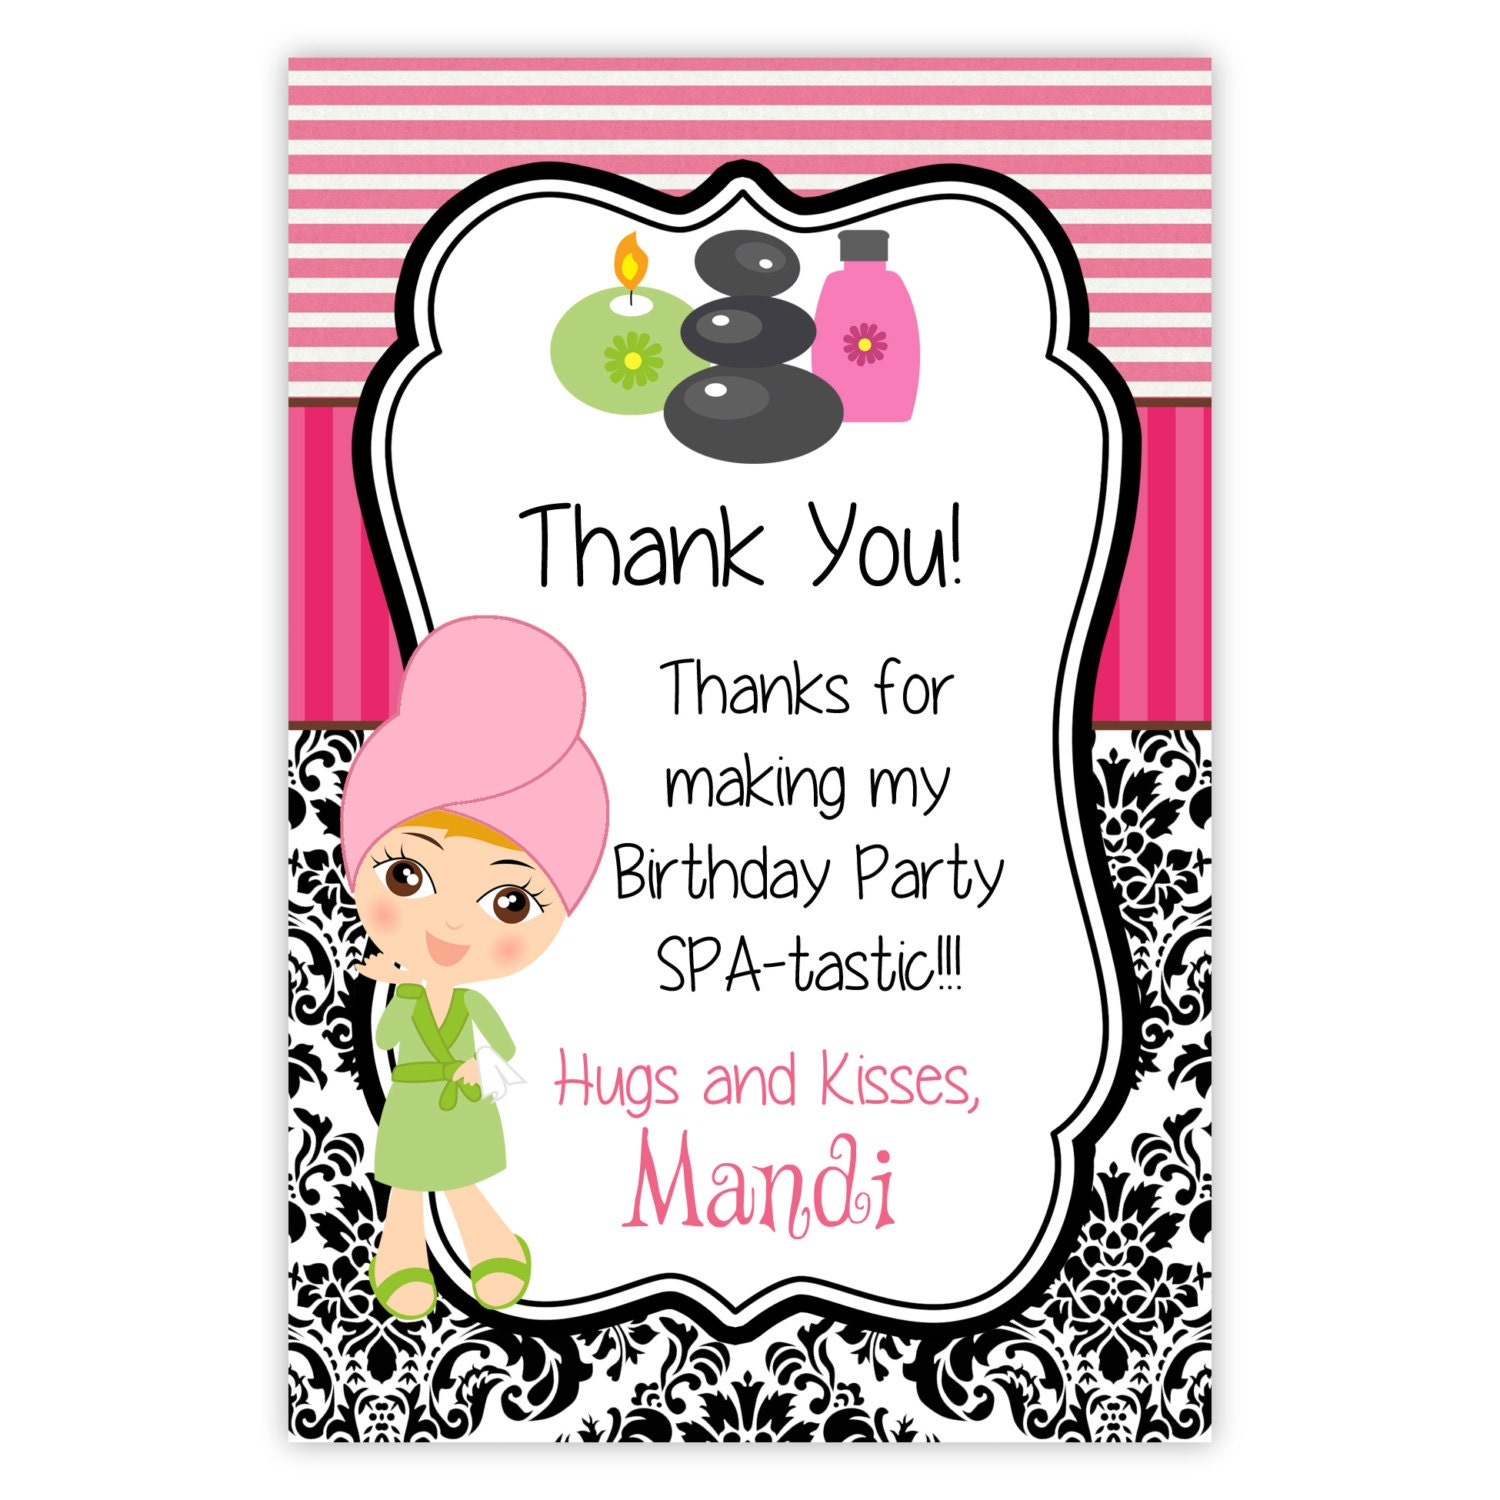 Spa Party Thank You Card Pink Stripes Black Damask Cute